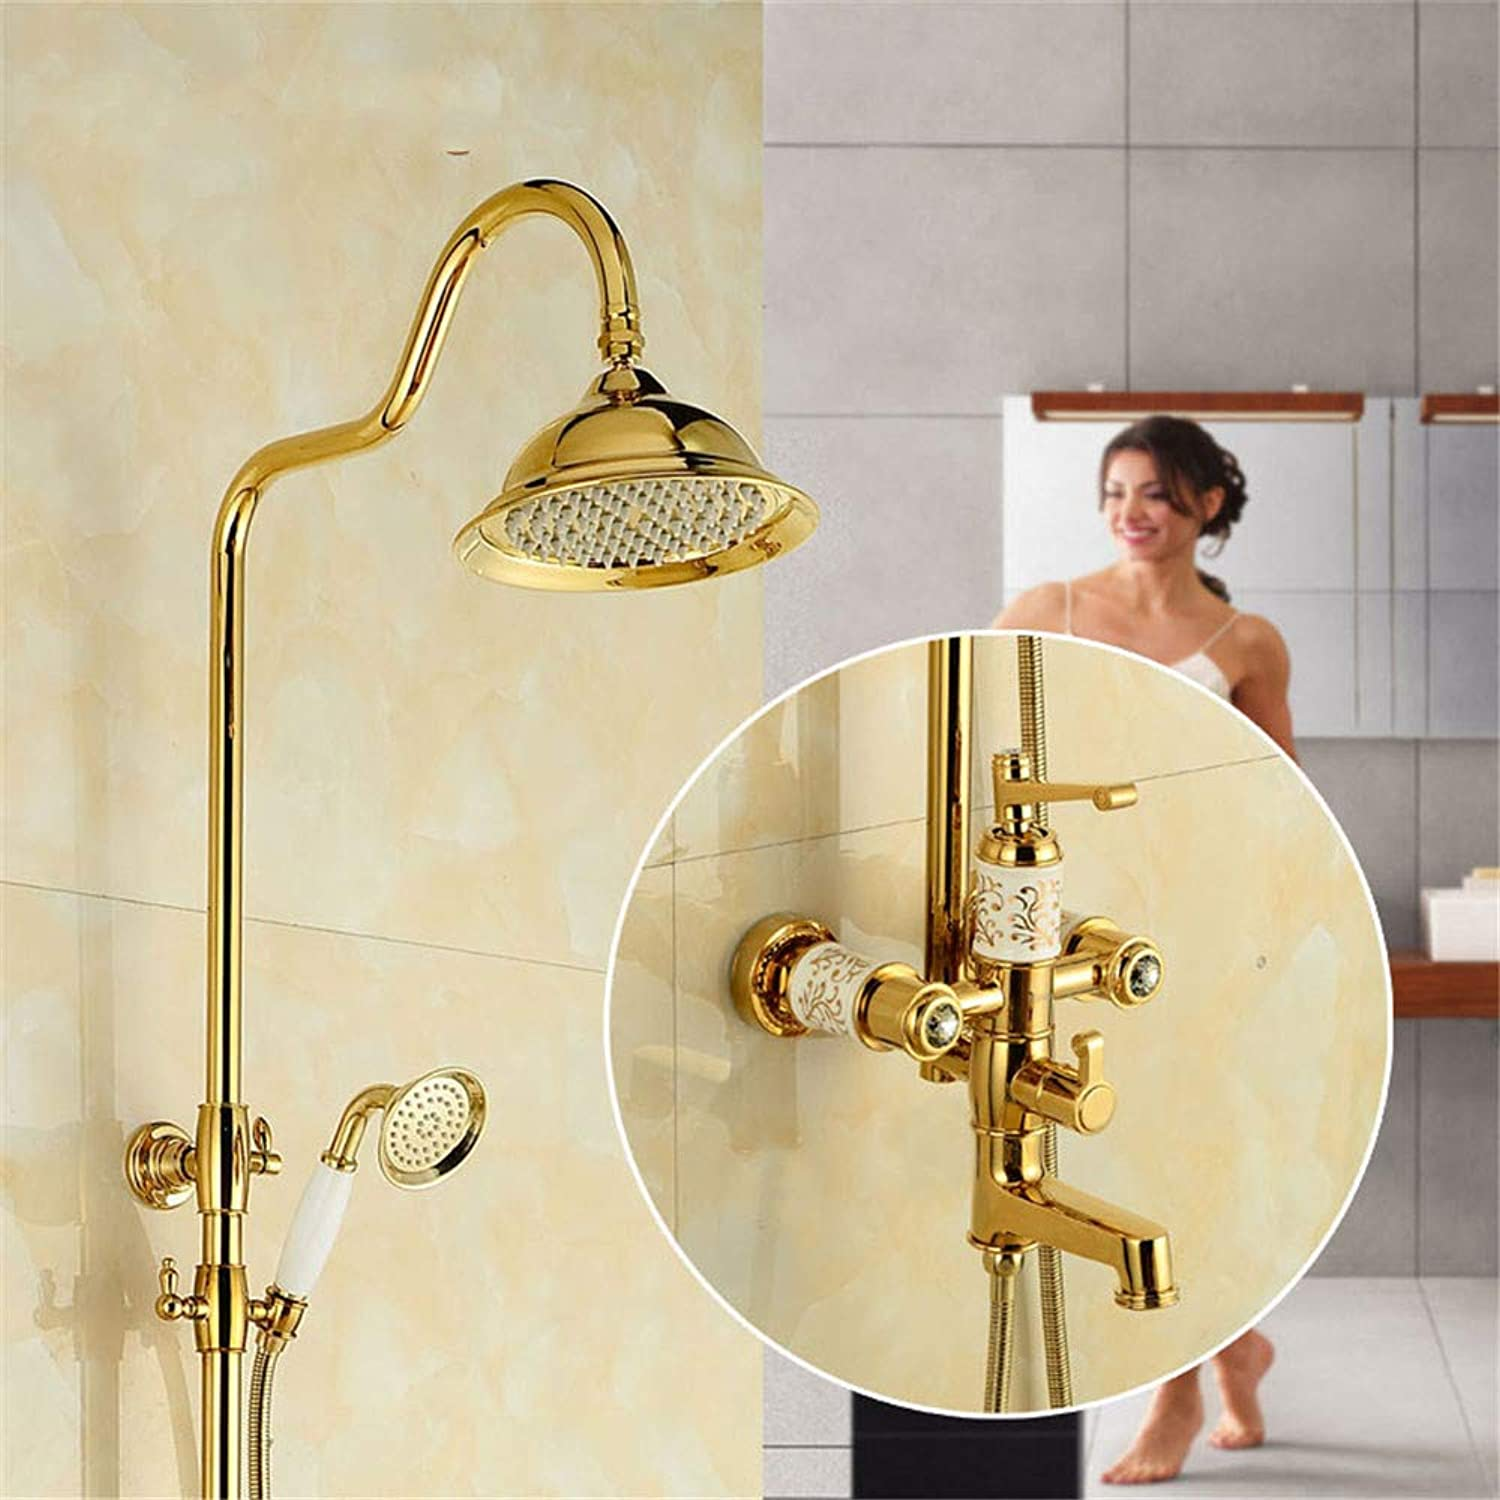 Hlluya Professional Sink Mixer Tap Kitchen Faucet The copper gold ceramic shower shower pink gold shower set retro shower faucet with lifting,